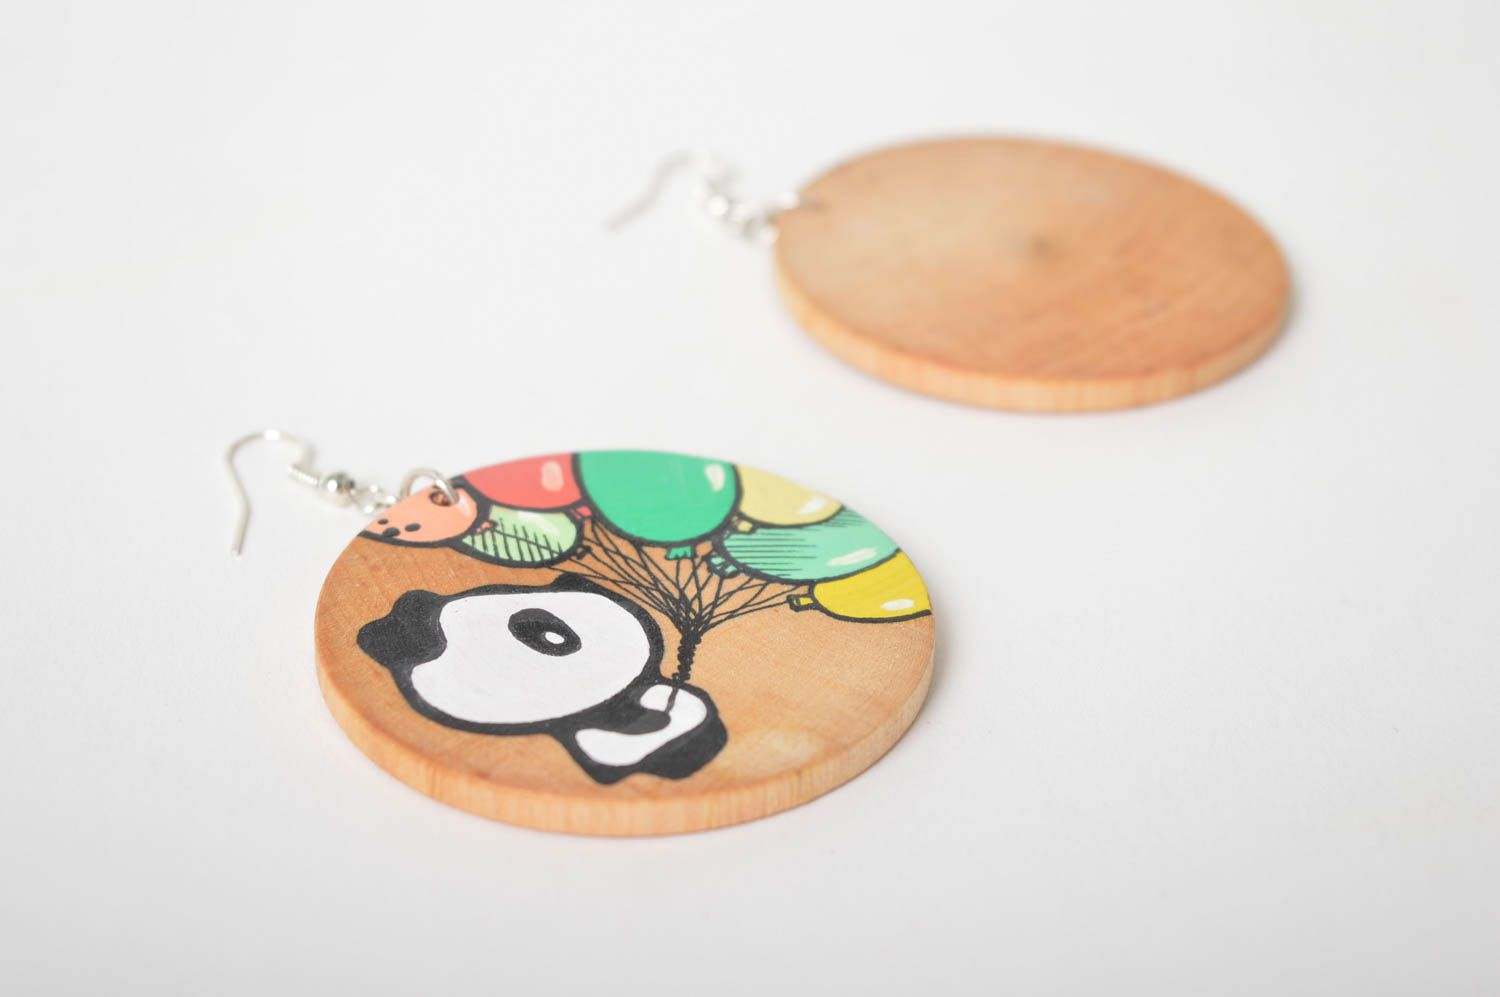 Wooden earrings handmade round earrings cute painted earrings with pandas photo 3